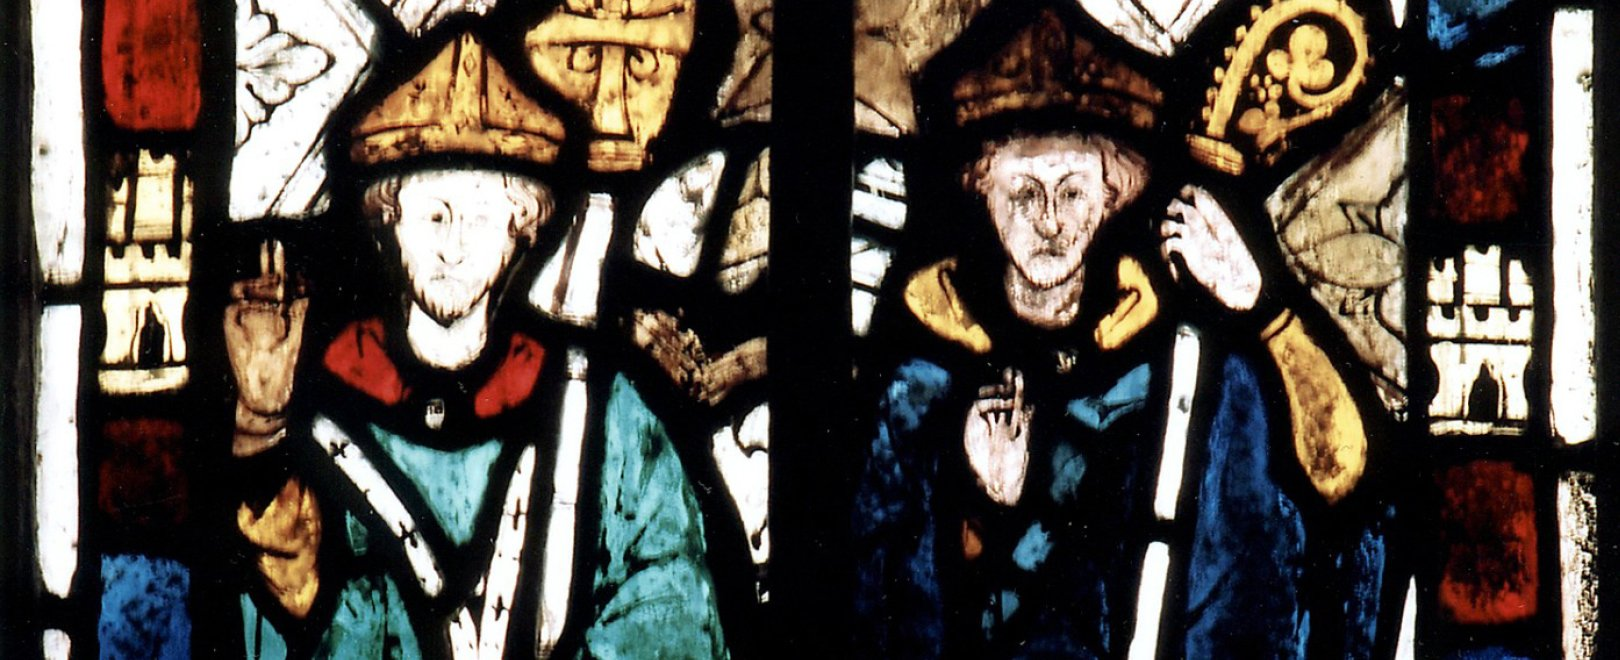 Who was St Thomas of Hereford?